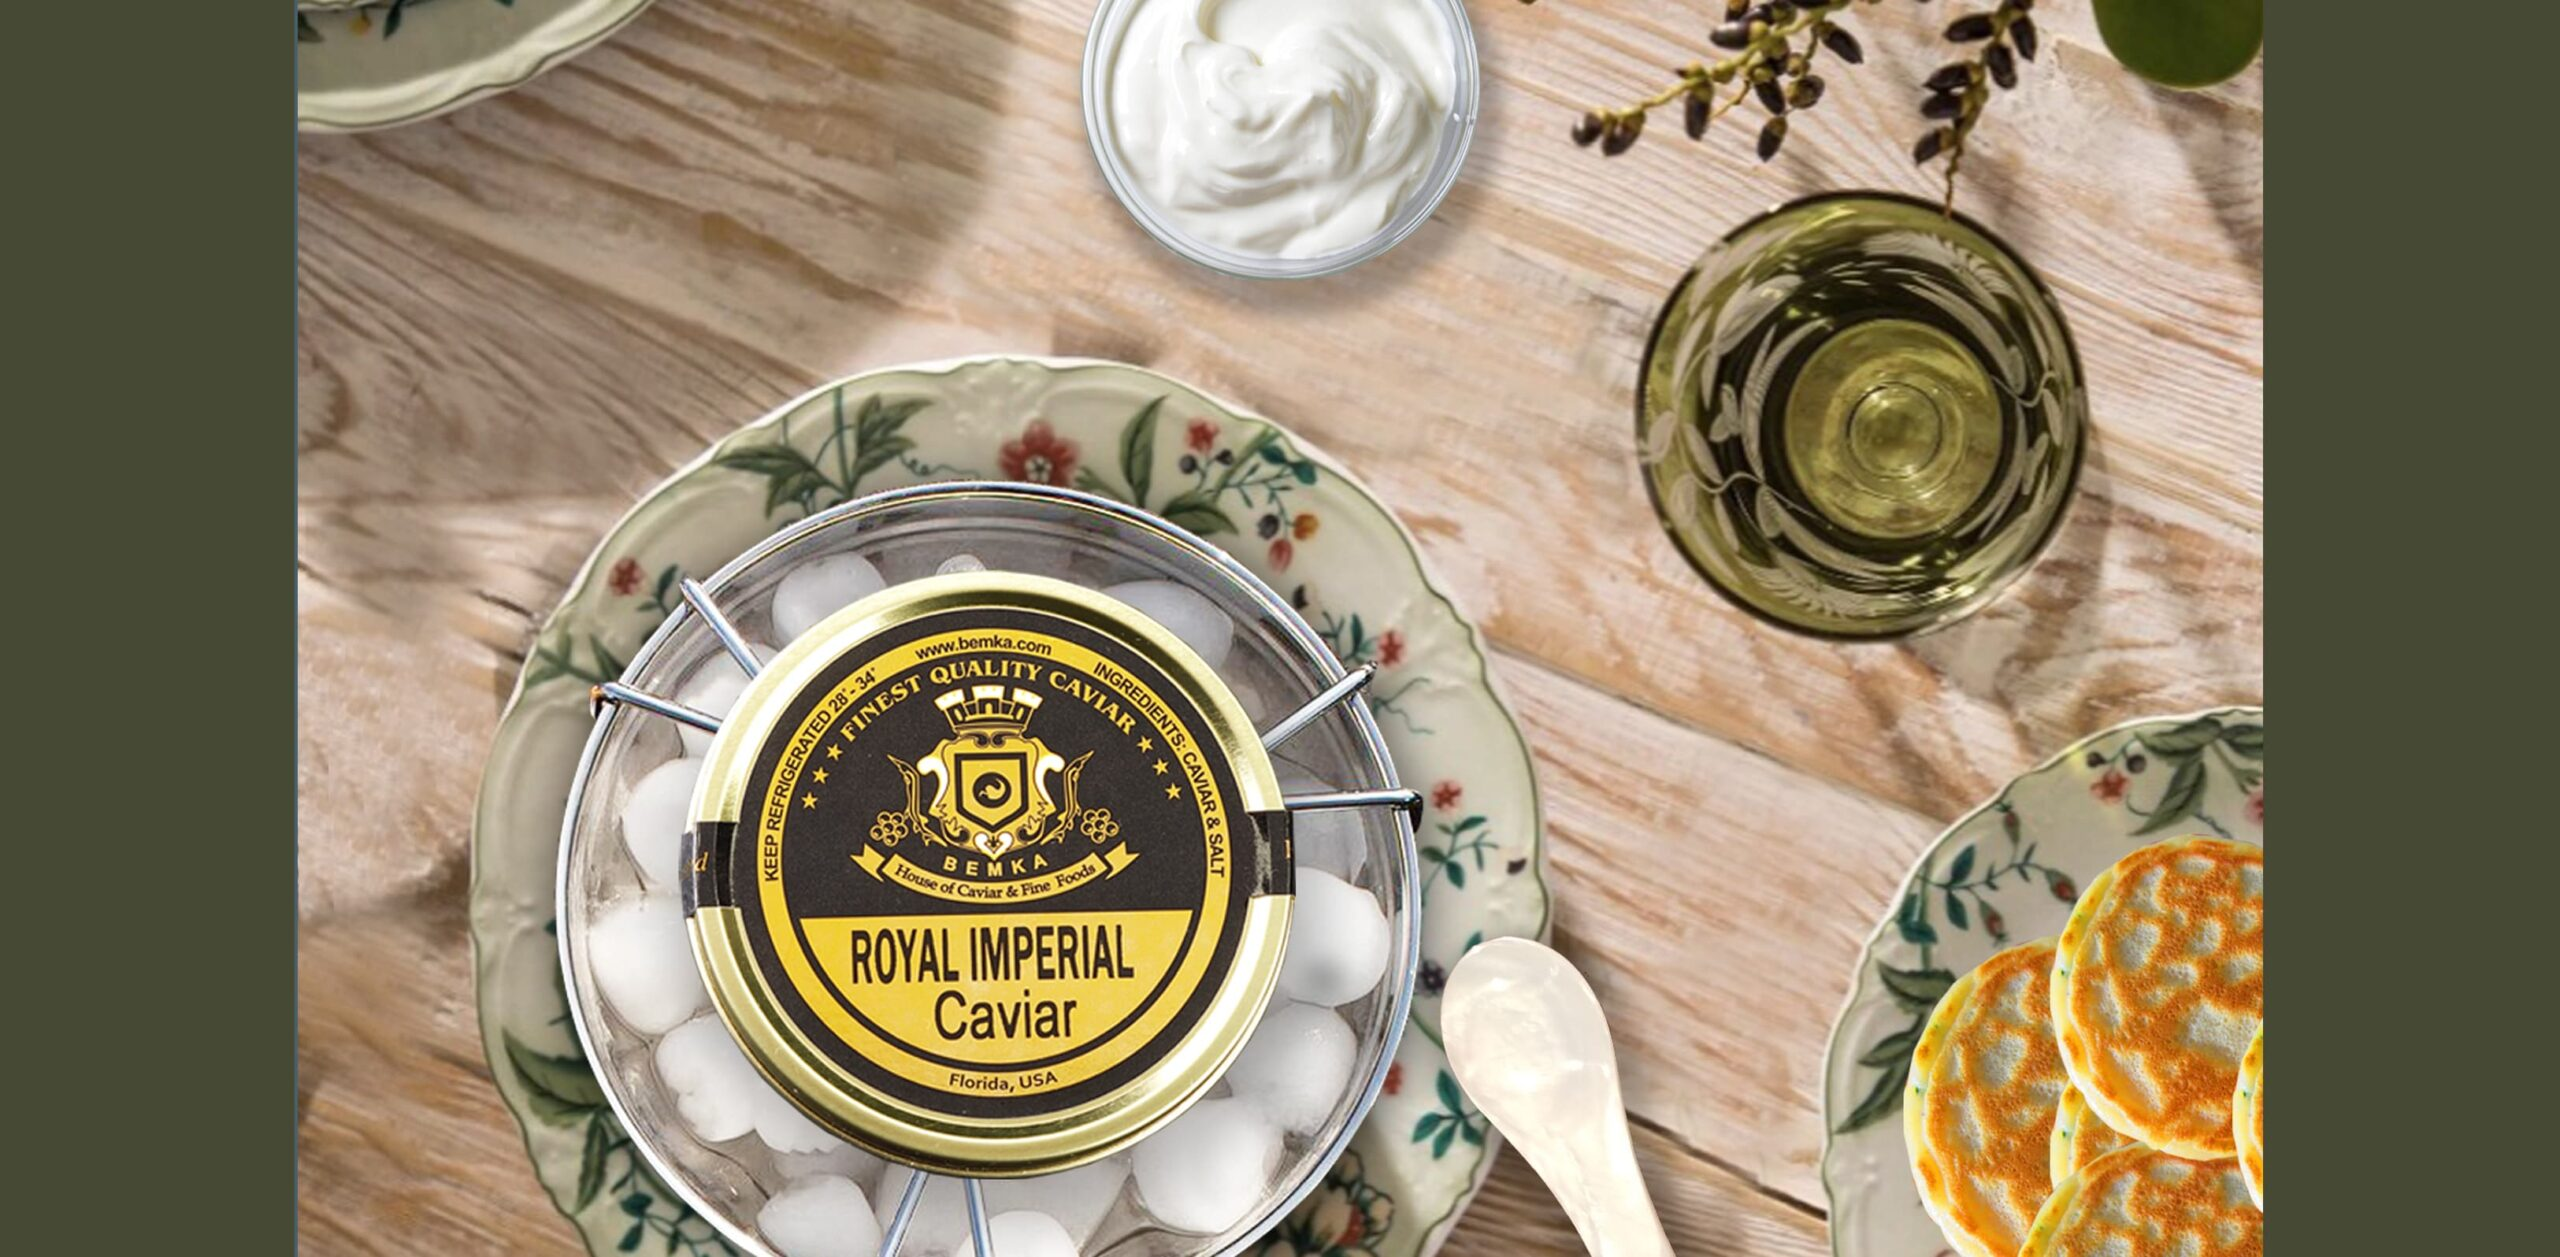 Best Easter Recipes 2021 to Caviar Lovers COVER scaled - Caviar Lover